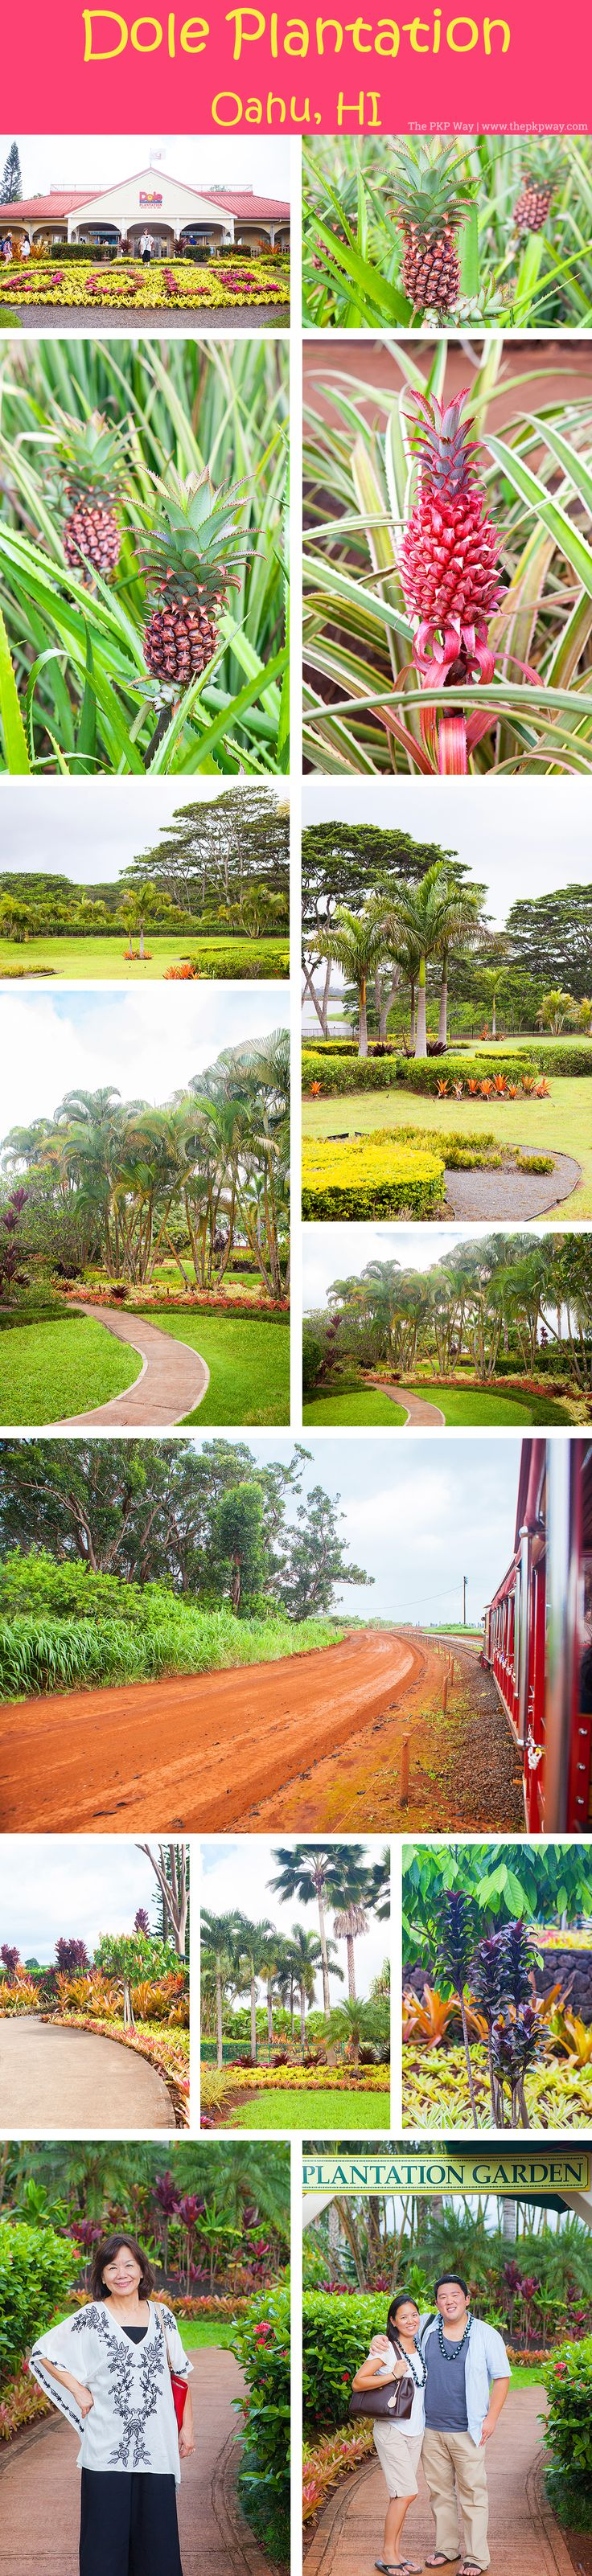 The PKP Way | A Weekend in Oahu, Hawaii | Dole Plantation http://www.thepkpway.com